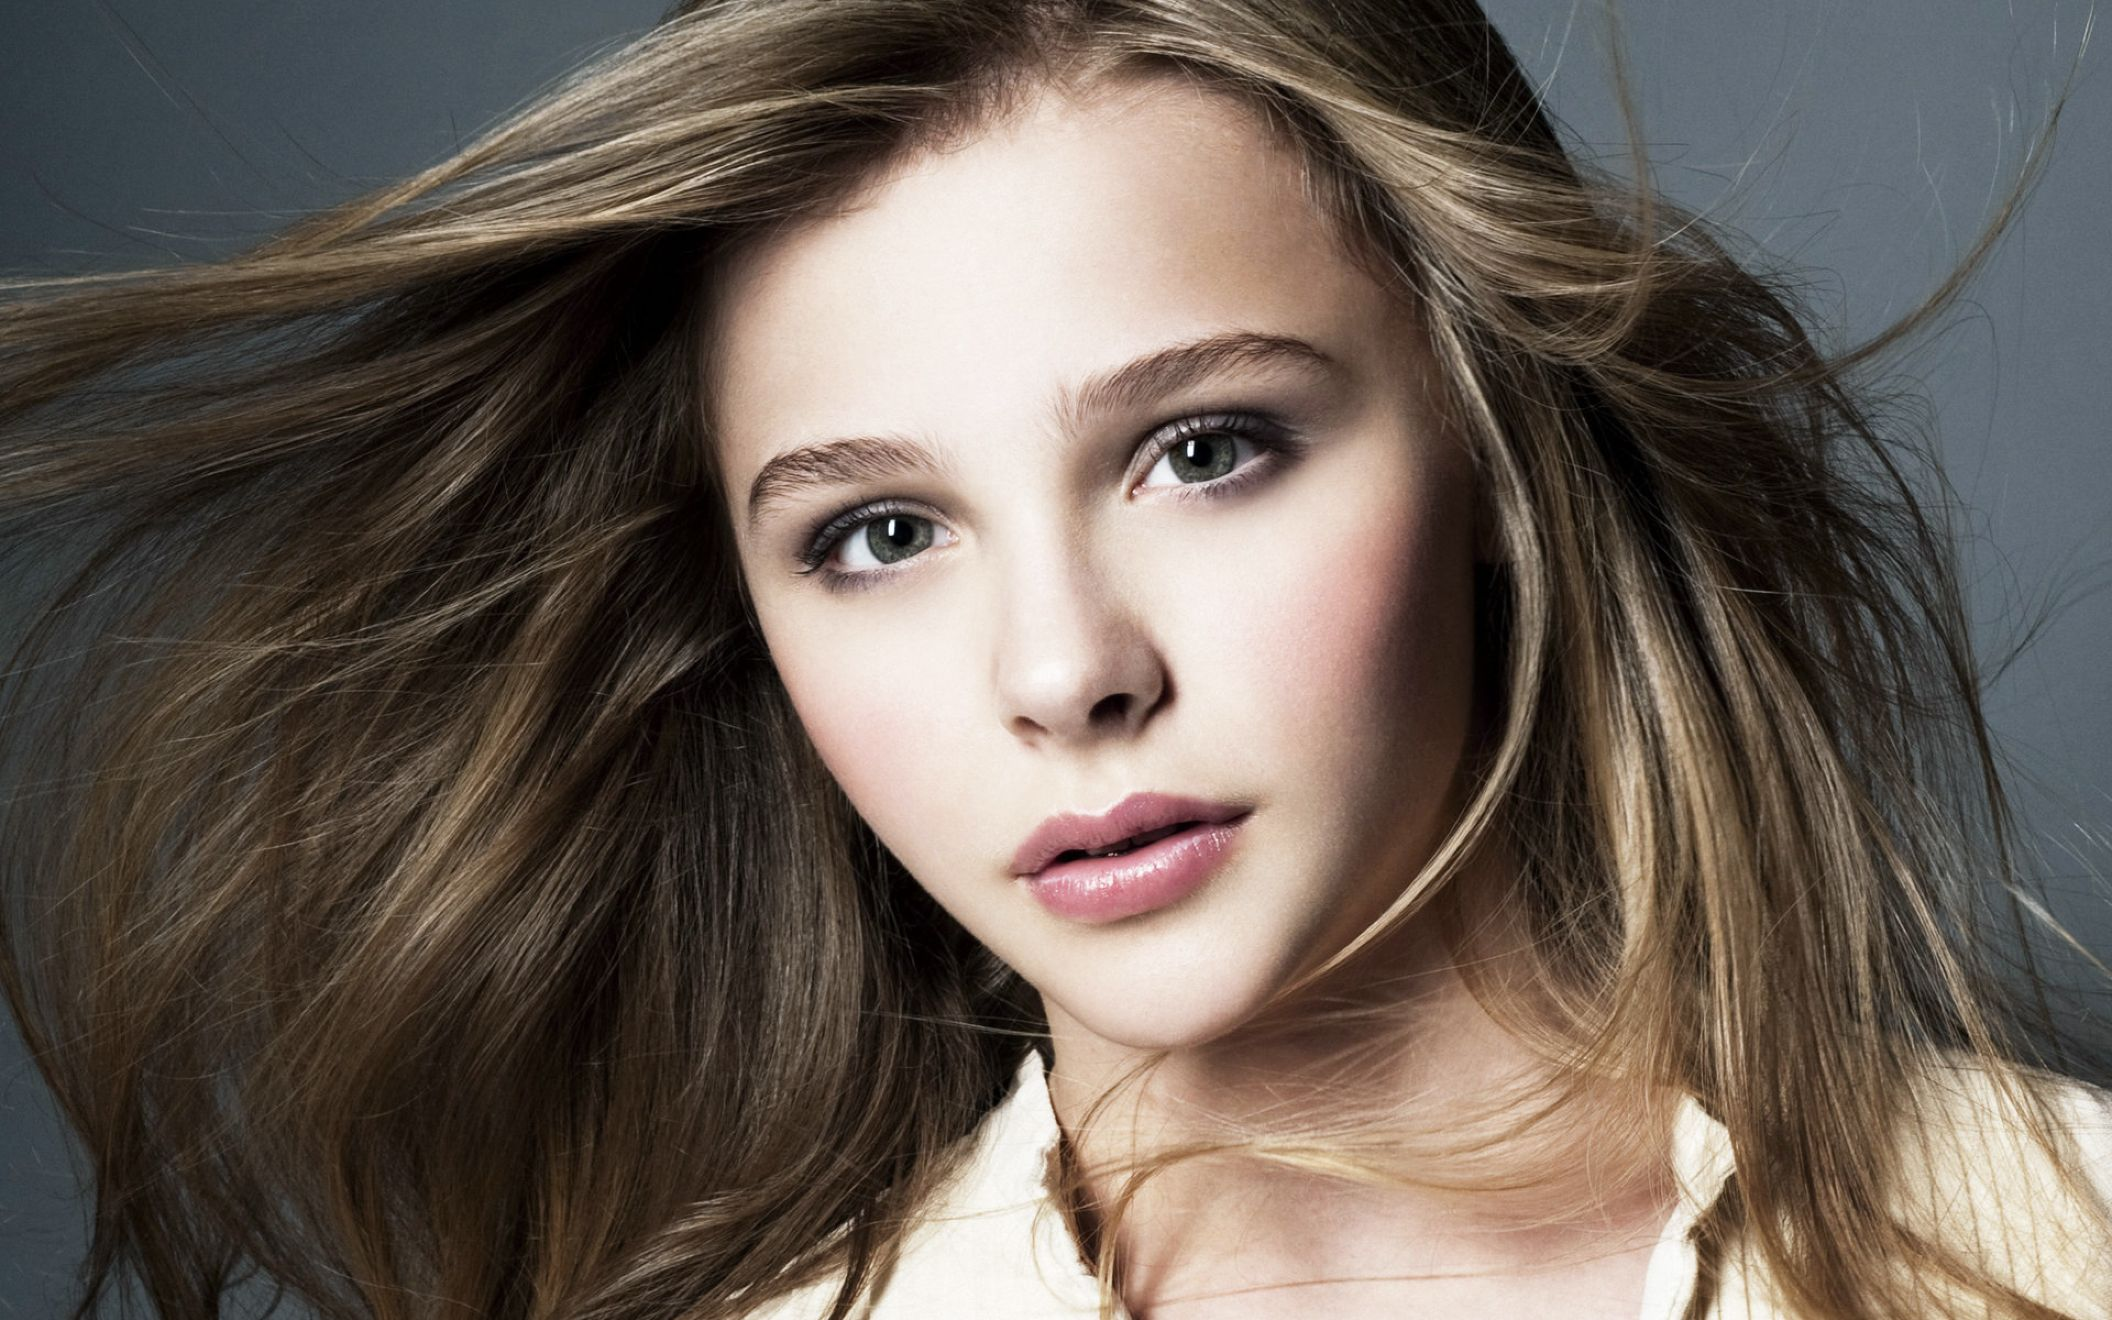 Download free HD Chloe Moretz 14 Wide Wallpaper, image